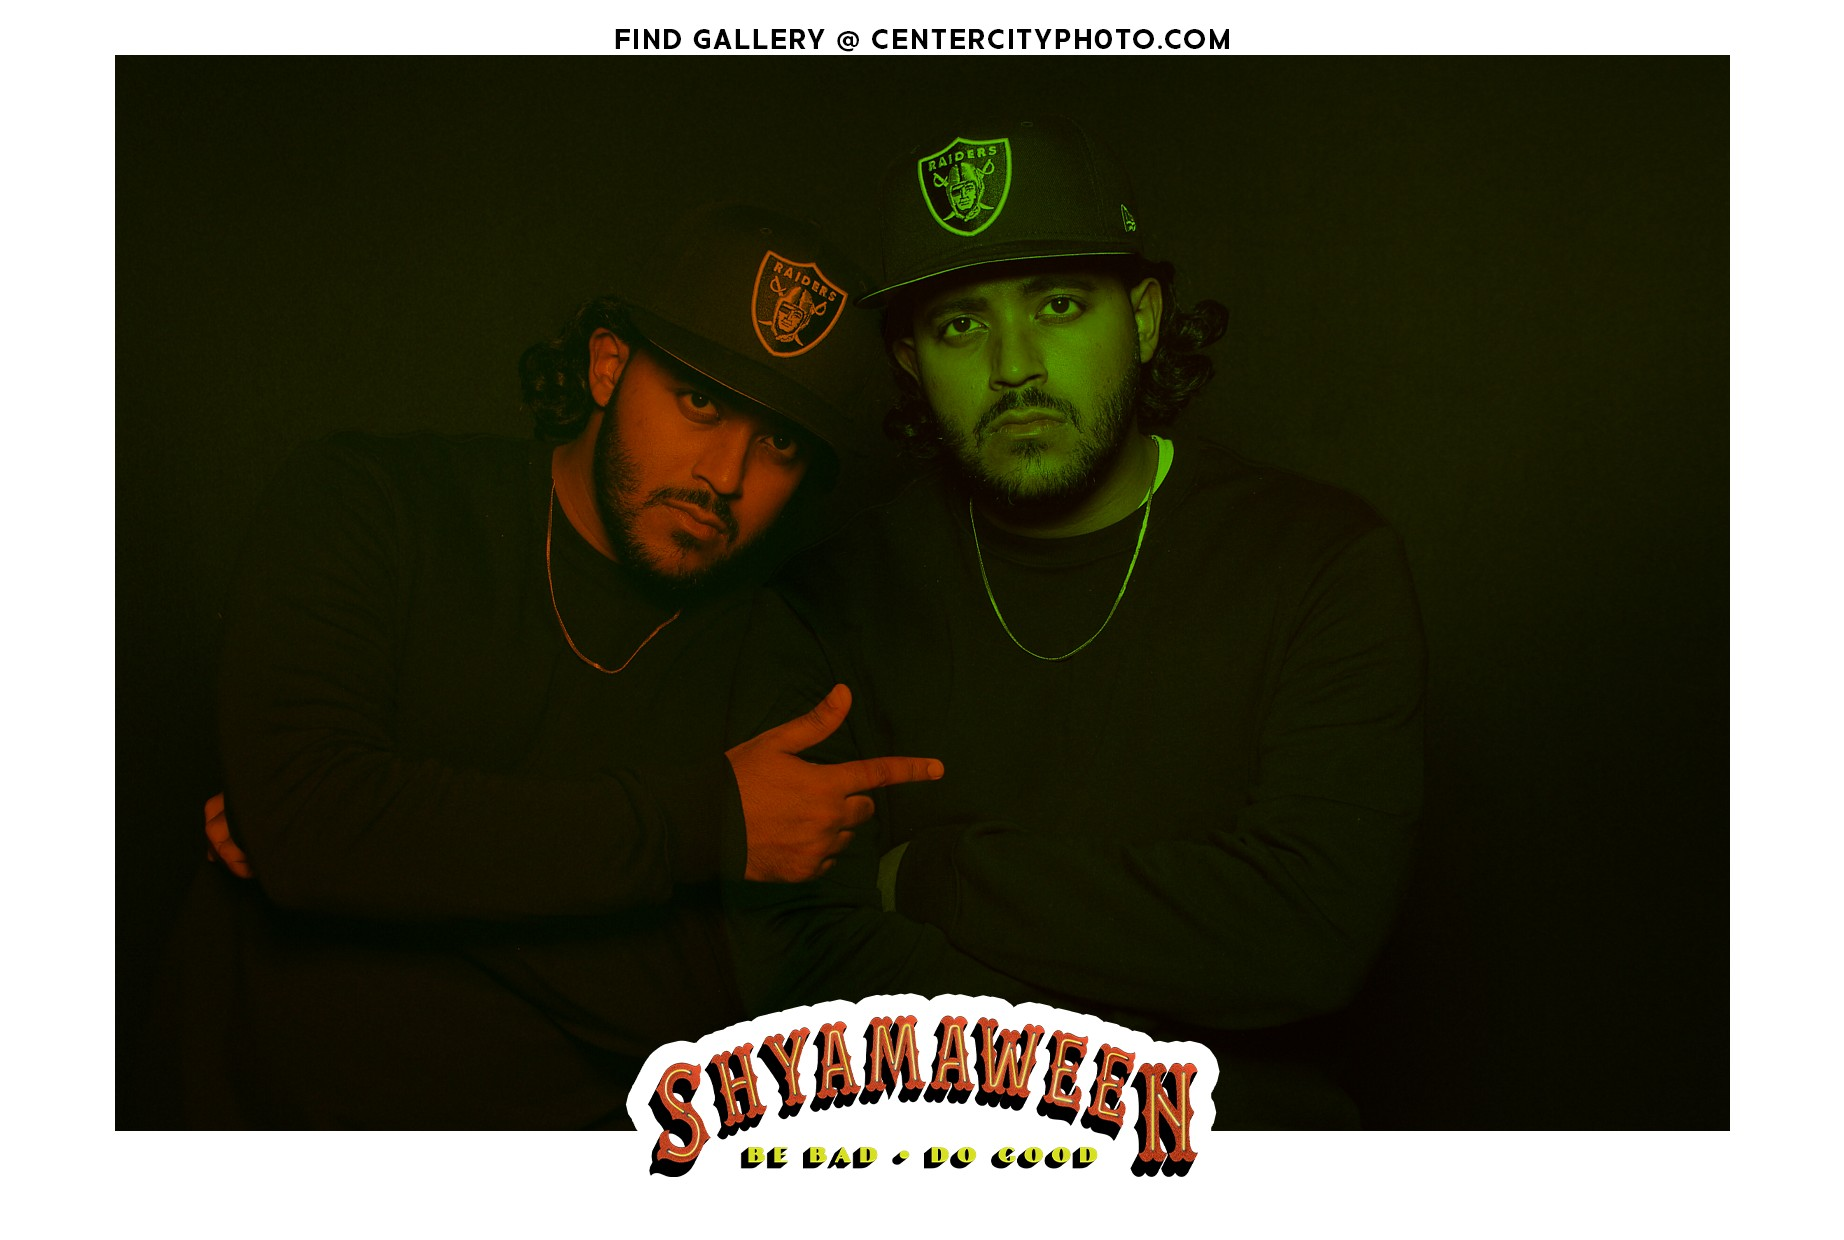 Double-exposure-photo-booth-3